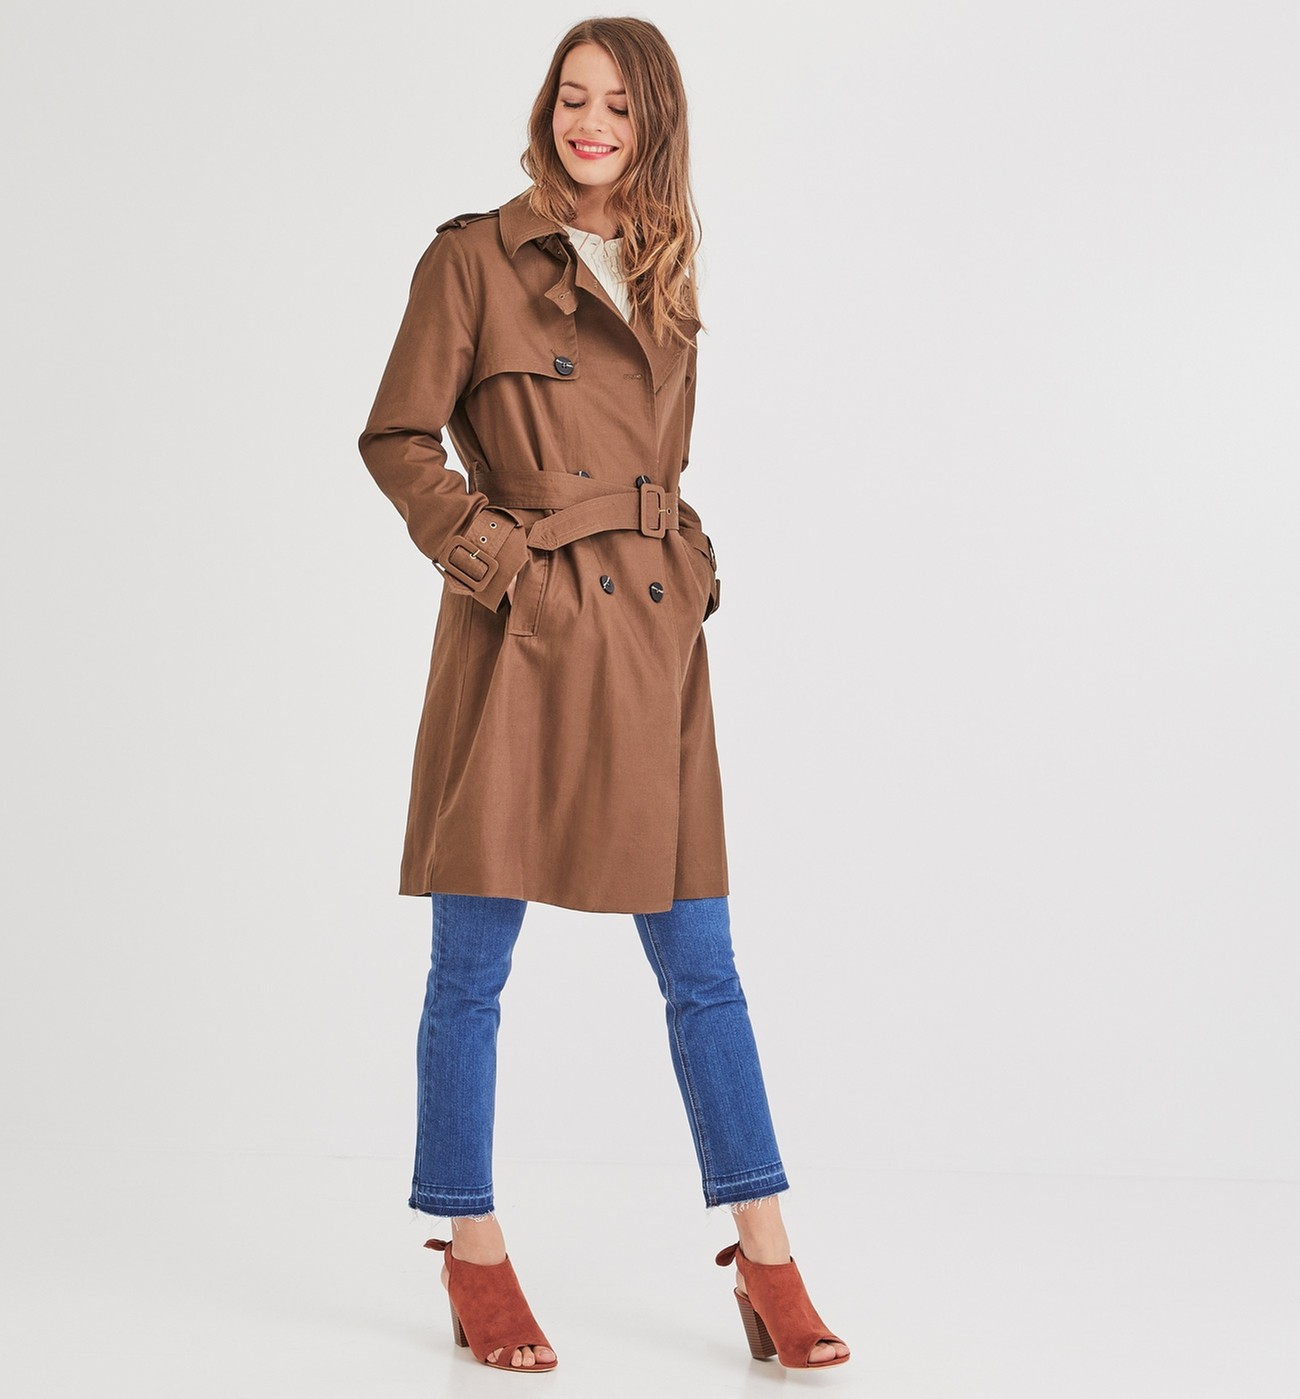 Promod Trench Femme Trench Trench Promod Classique Classique Promod Femme Femme Trench Classique Promod nOk8PXN0w